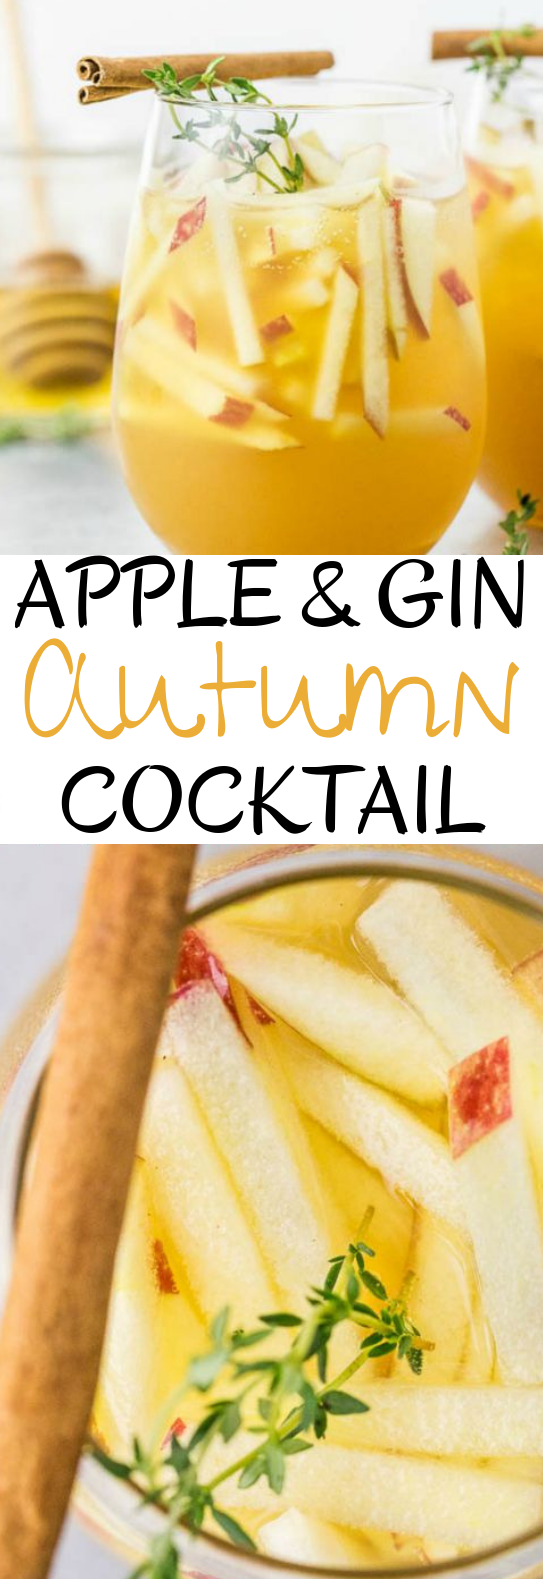 Apple & Gin Autumn Cocktail #drinks #cocktails